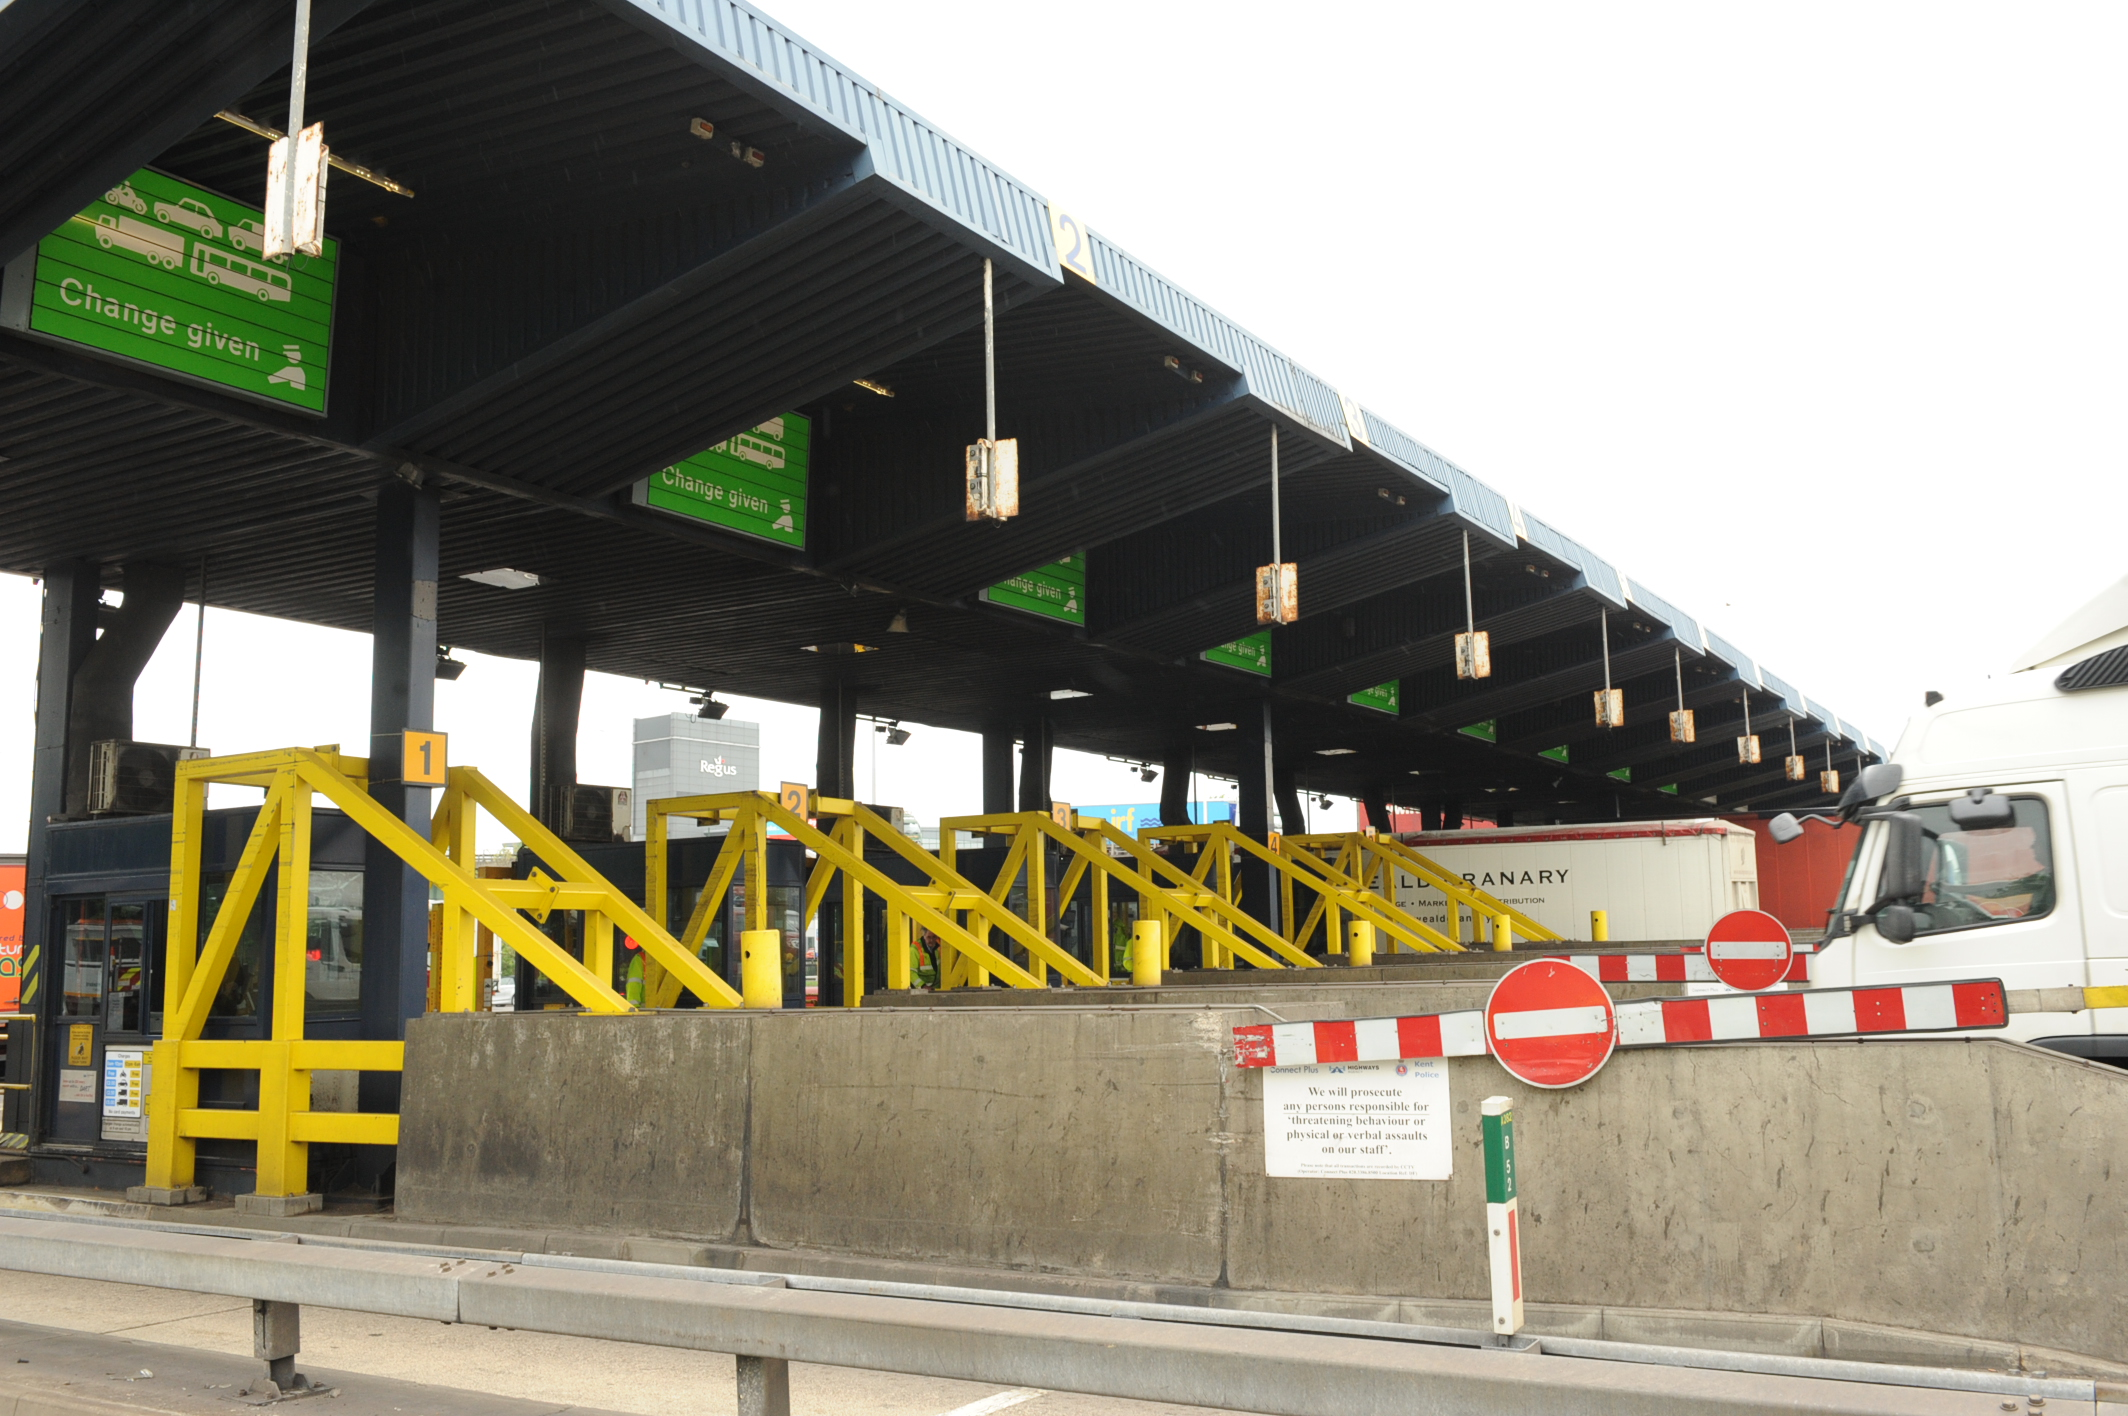 The existing tolls at Dartford will be replaced in October